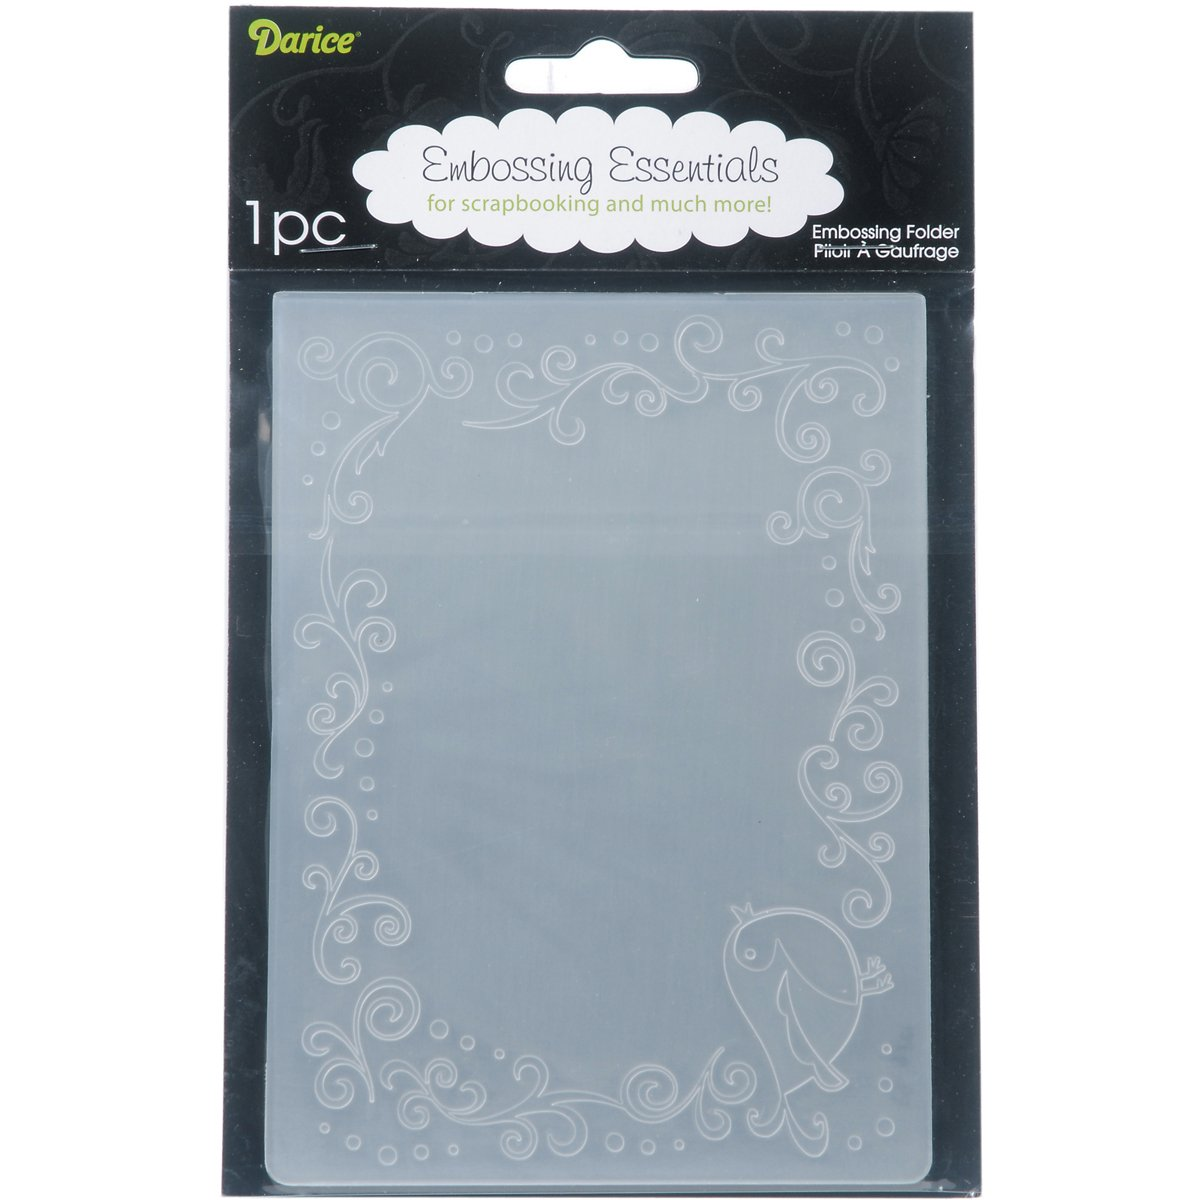 Darice 1216-63 Bird Border Embossing Folder, 4.25 by 5.75-Inch